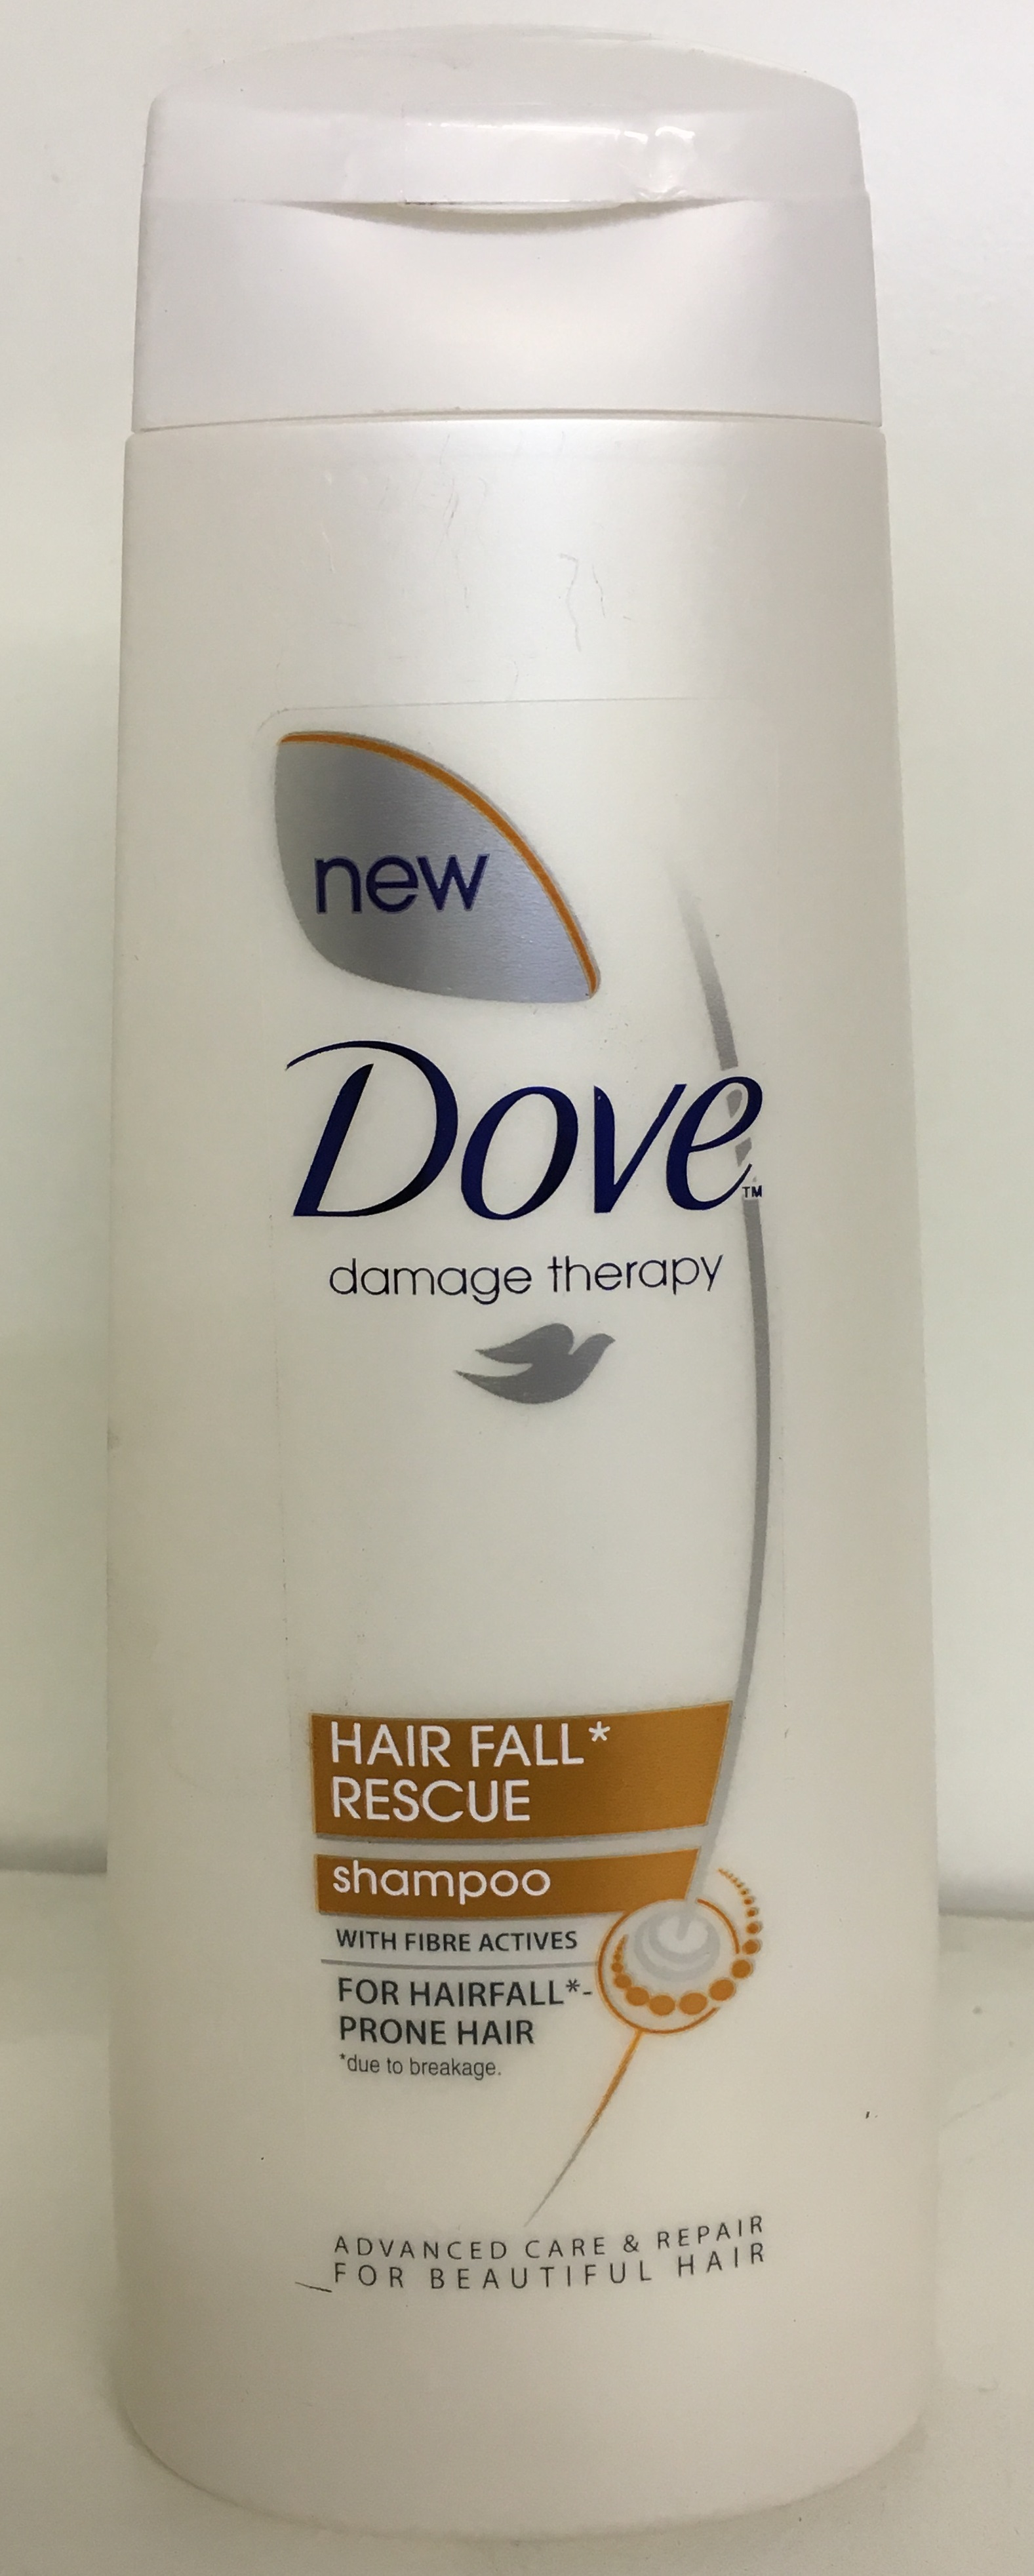 Dove Shampoo Hair Fall Rescue